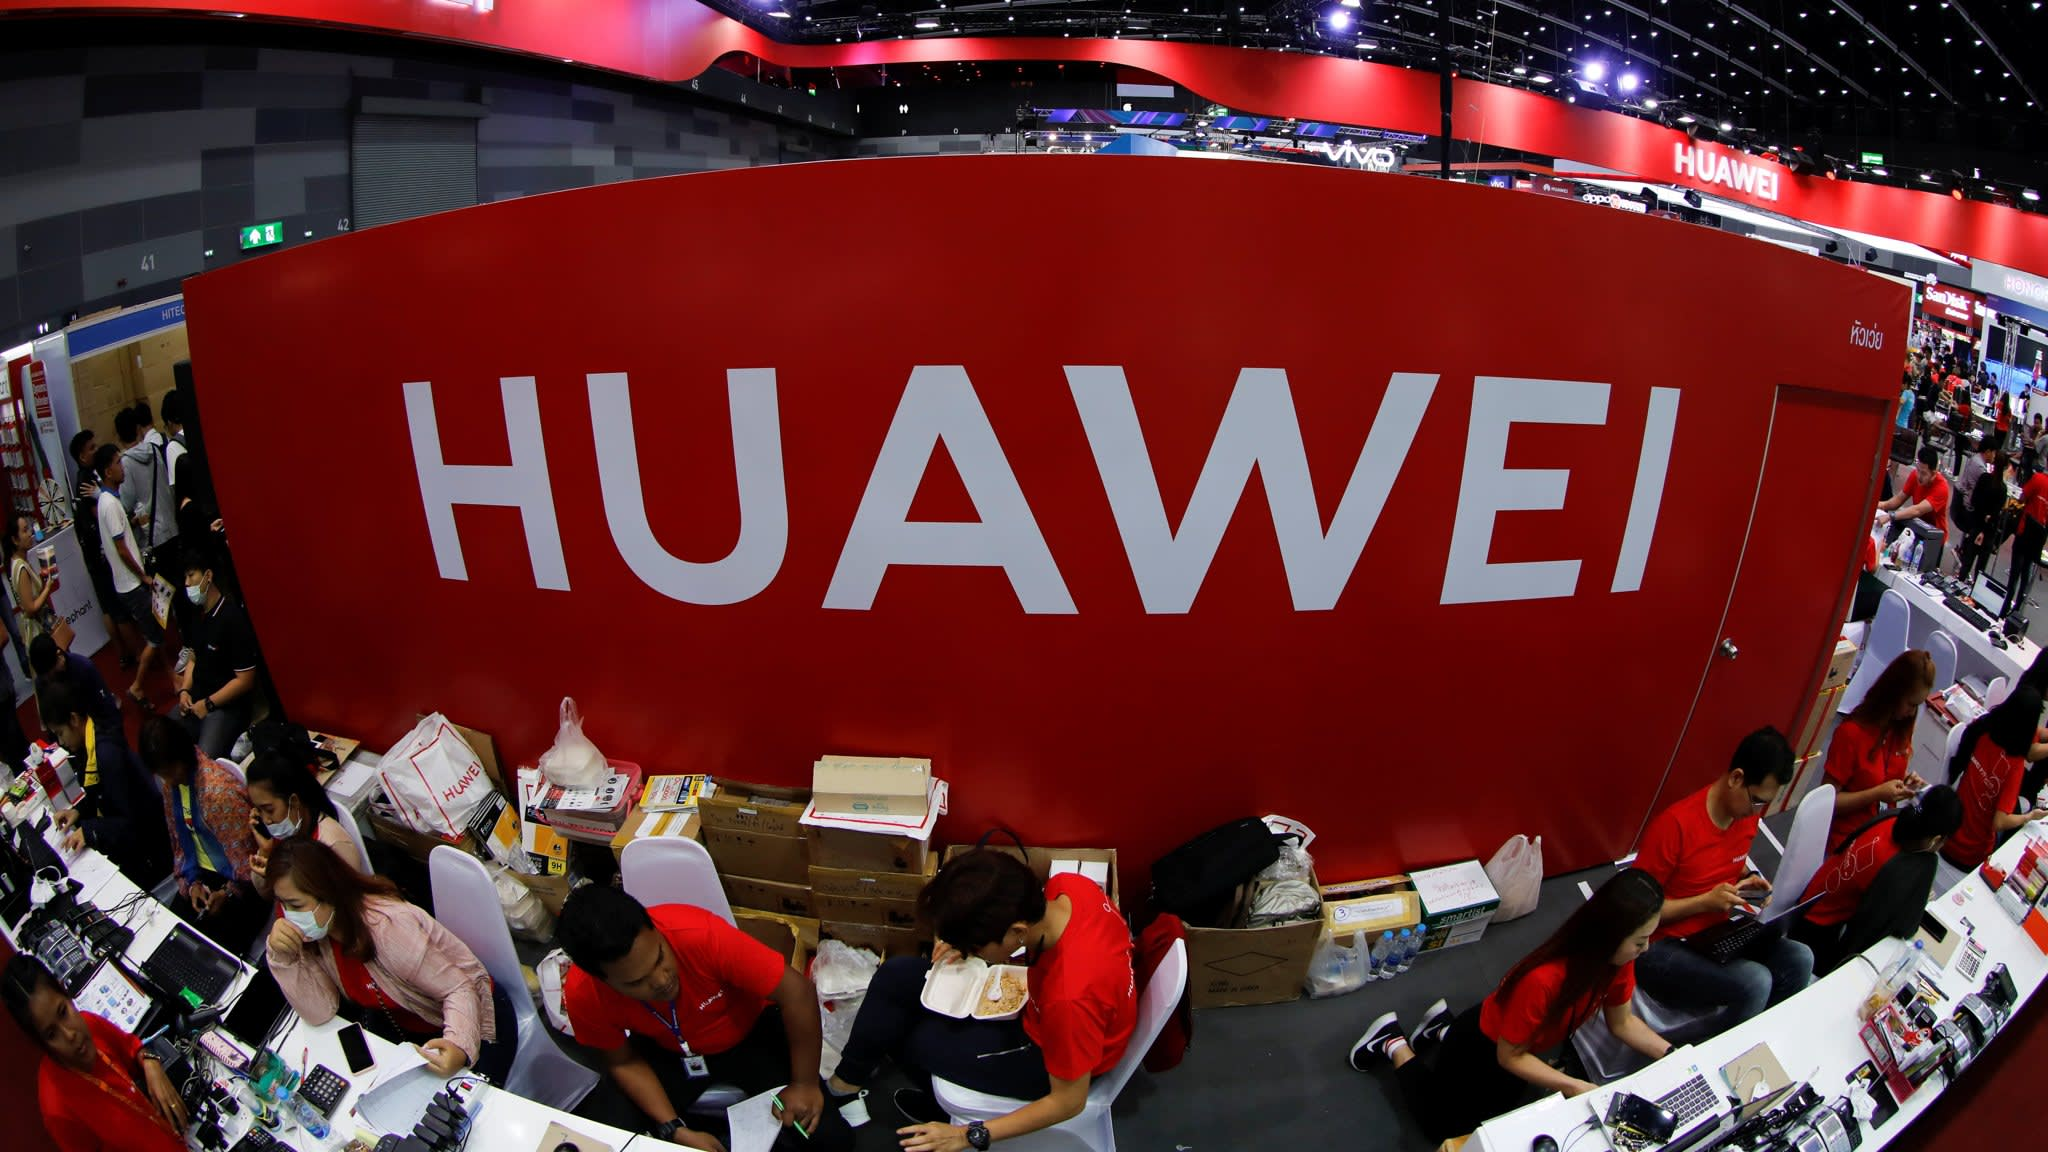 Huawei to offload undersea telecoms cable business